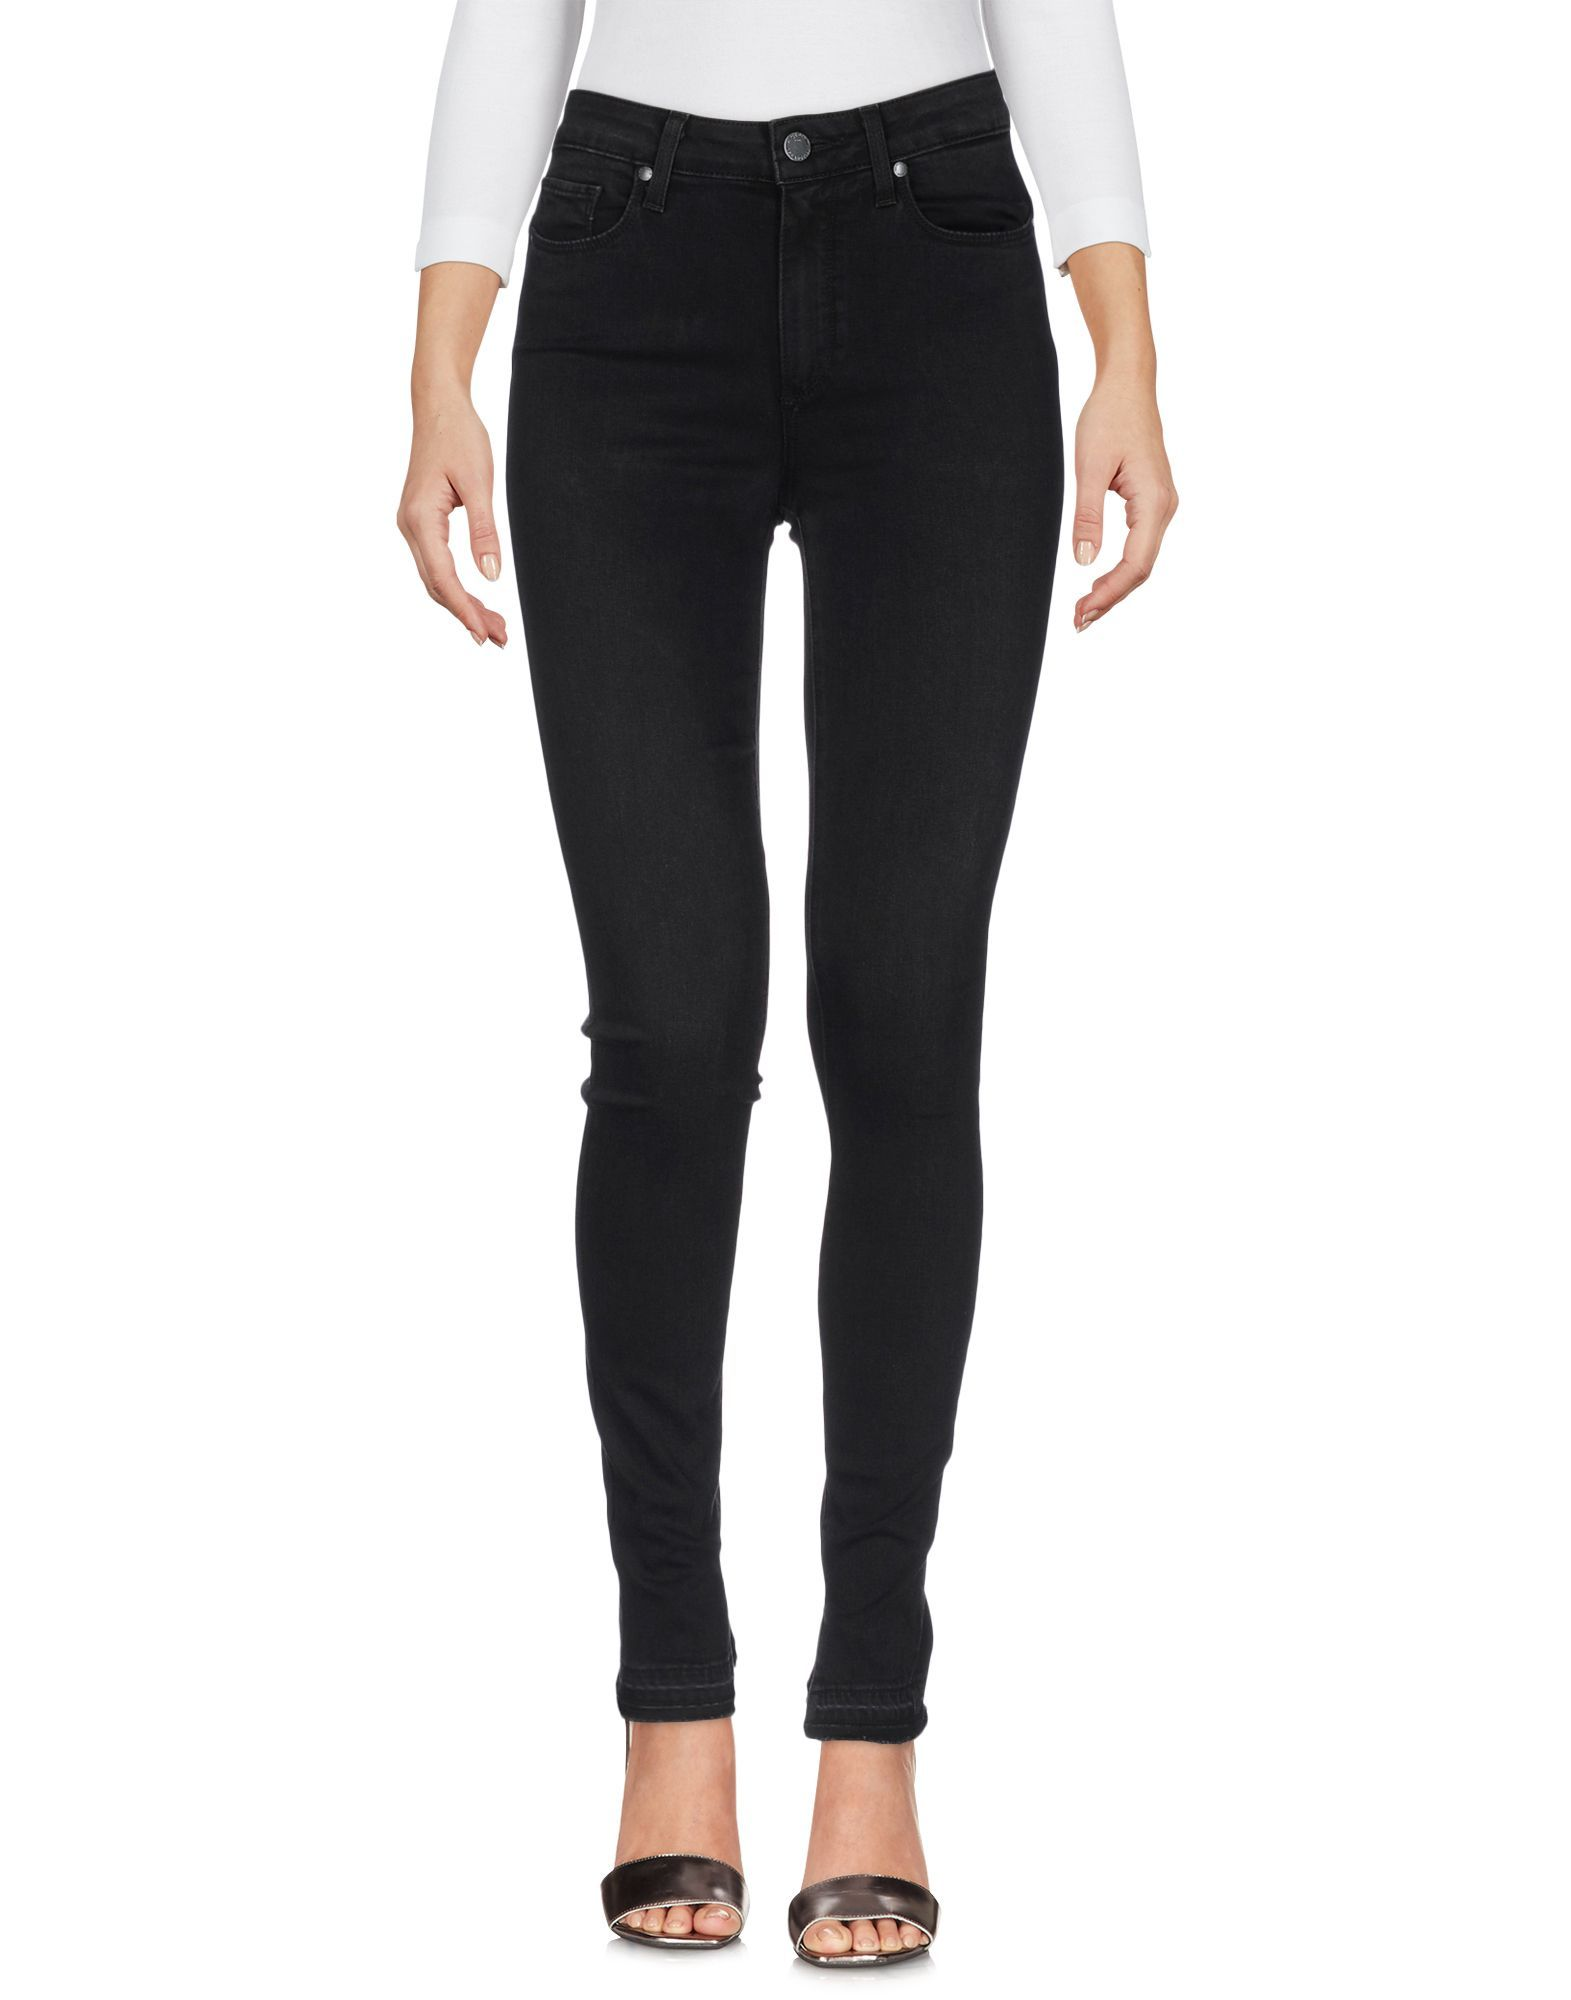 19598cb229ff6 #paige #cloth # Paige Jeans, Black Shadow, Maternity Skinny Jeans